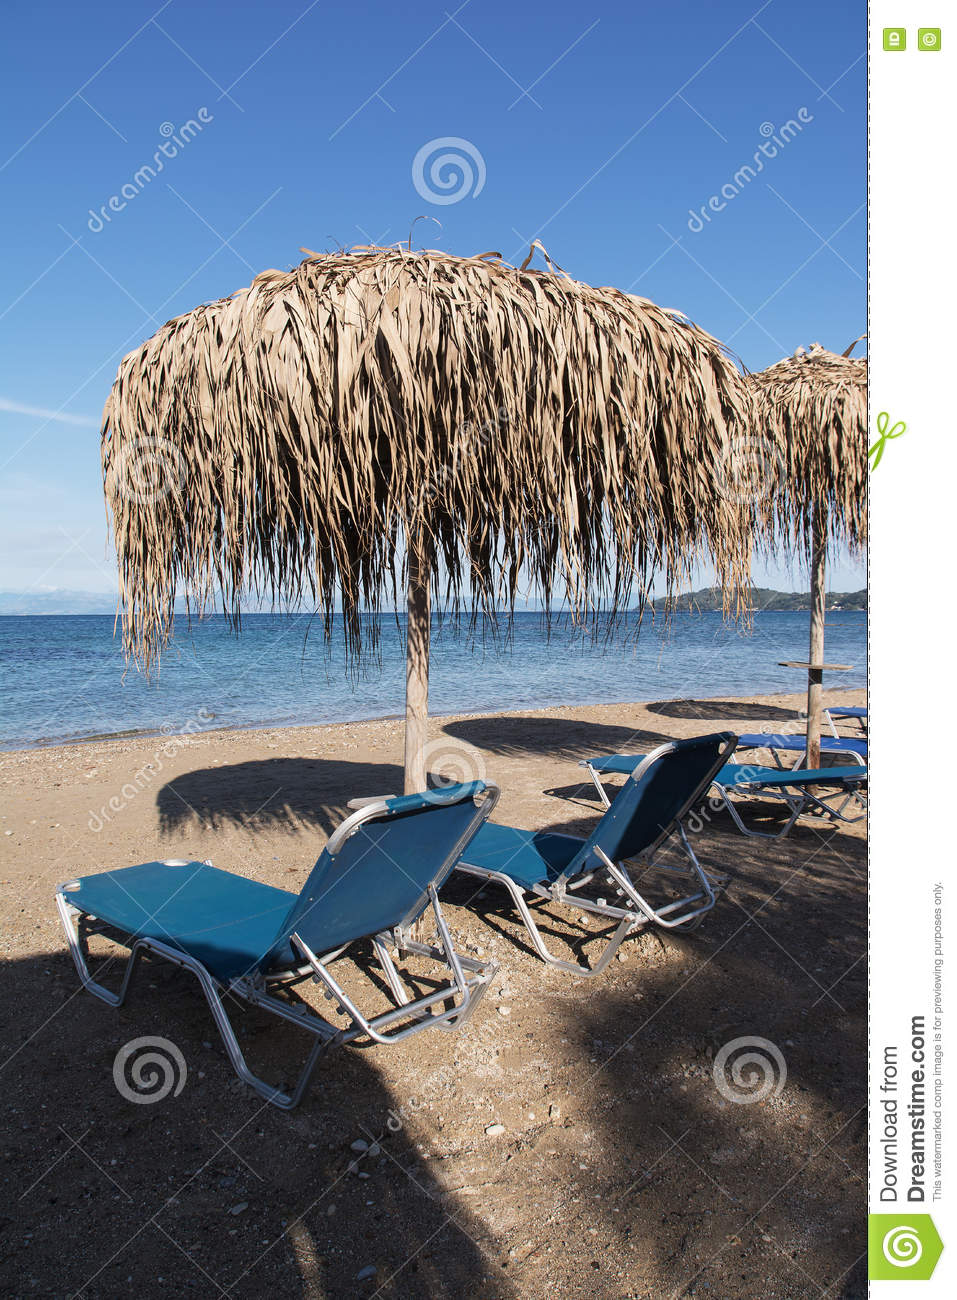 Straw umbrellas and sunbeds on a sandy beach, Corfu, Greece